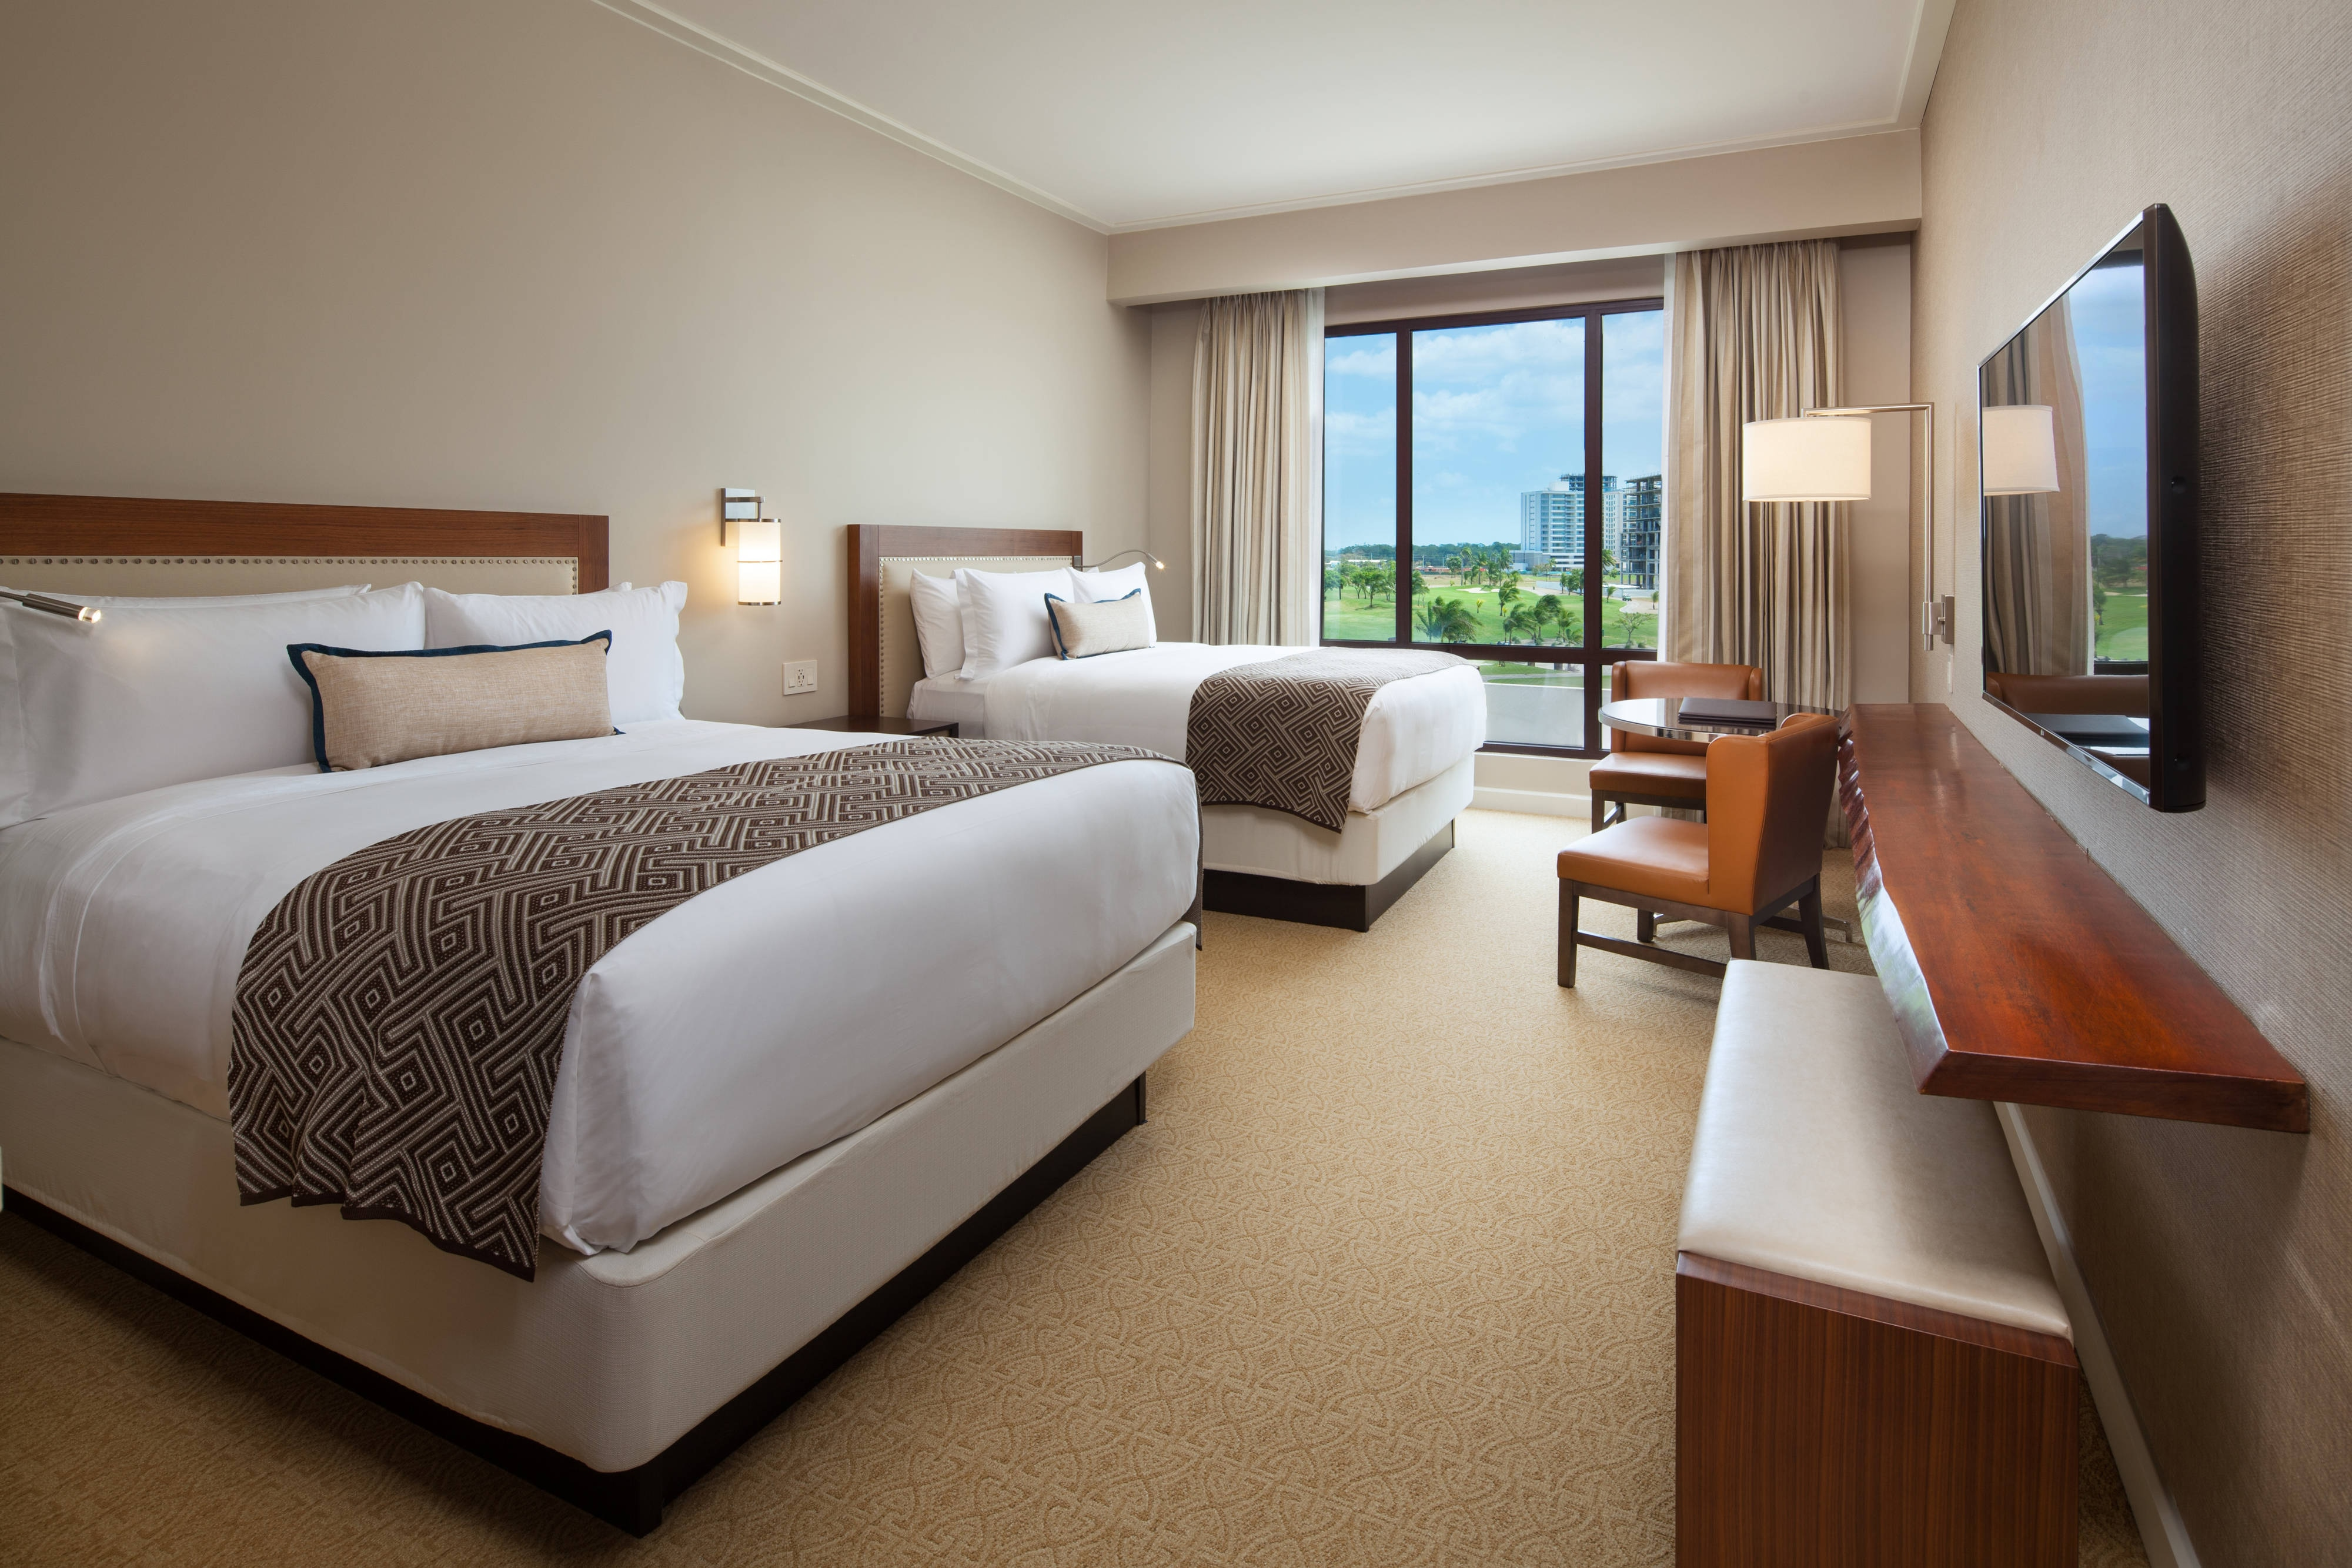 Double Queen Deluxe Room with Golf View